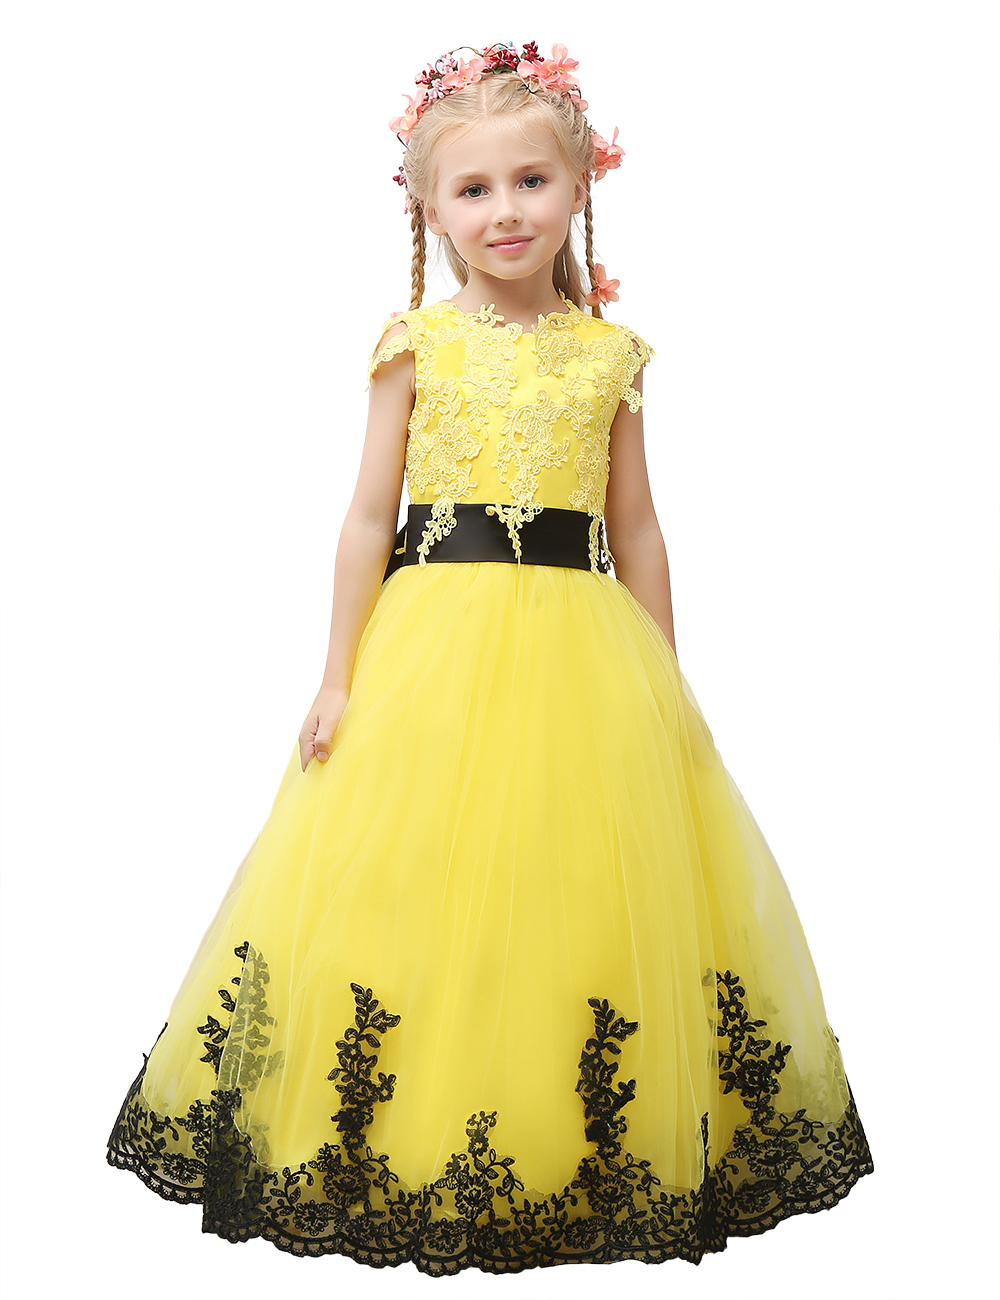 2018 Pageant Dress Little Princess Glitz Ball Gown Lace Yellow Ball